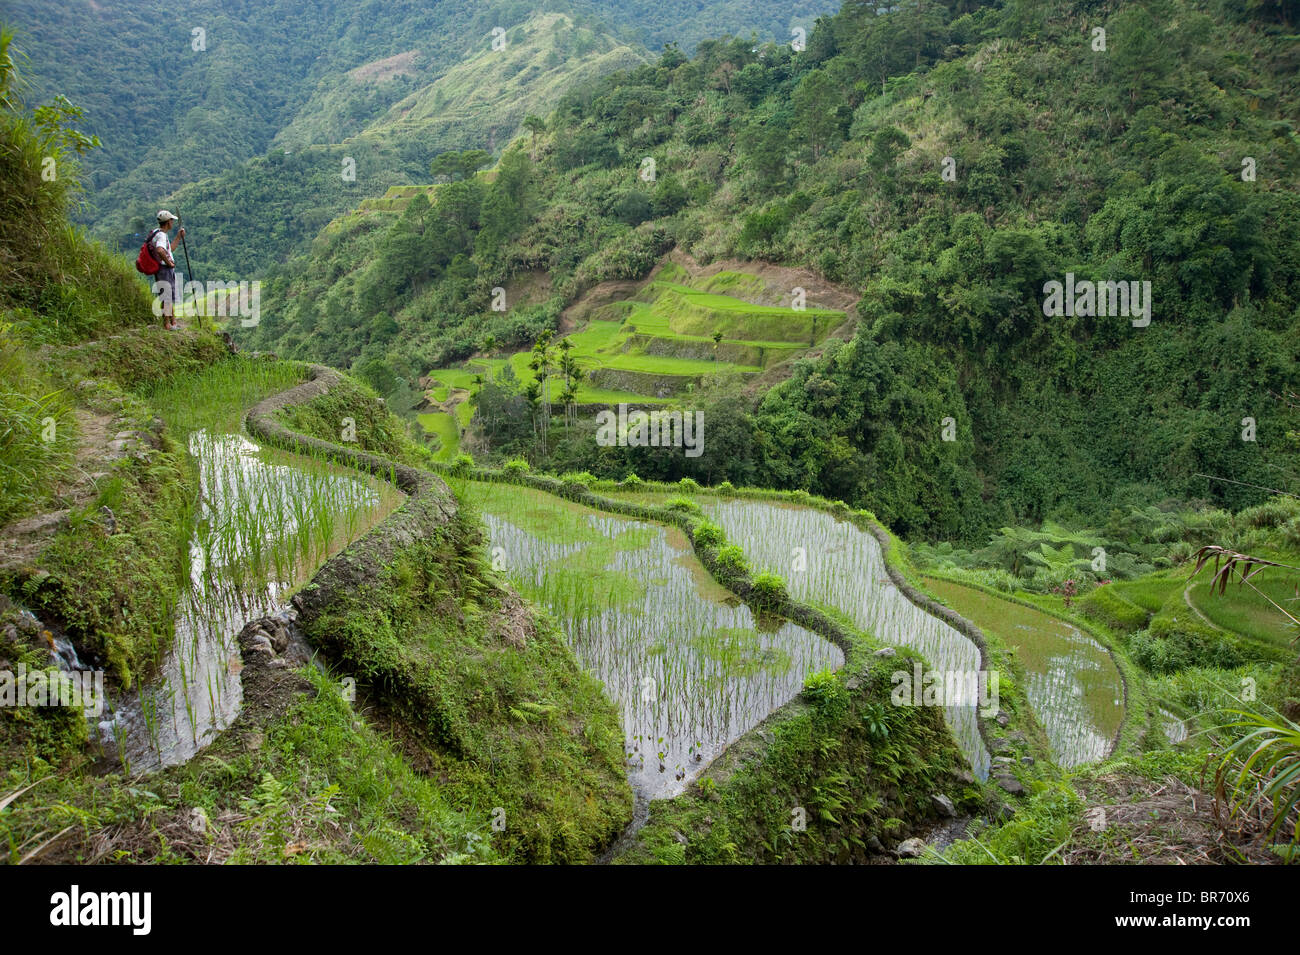 Man looking out over newly planted rice paddy fields (Oryza sp.), Banaue Rice Terraces, Philippines.  UNESCO World - Stock Image